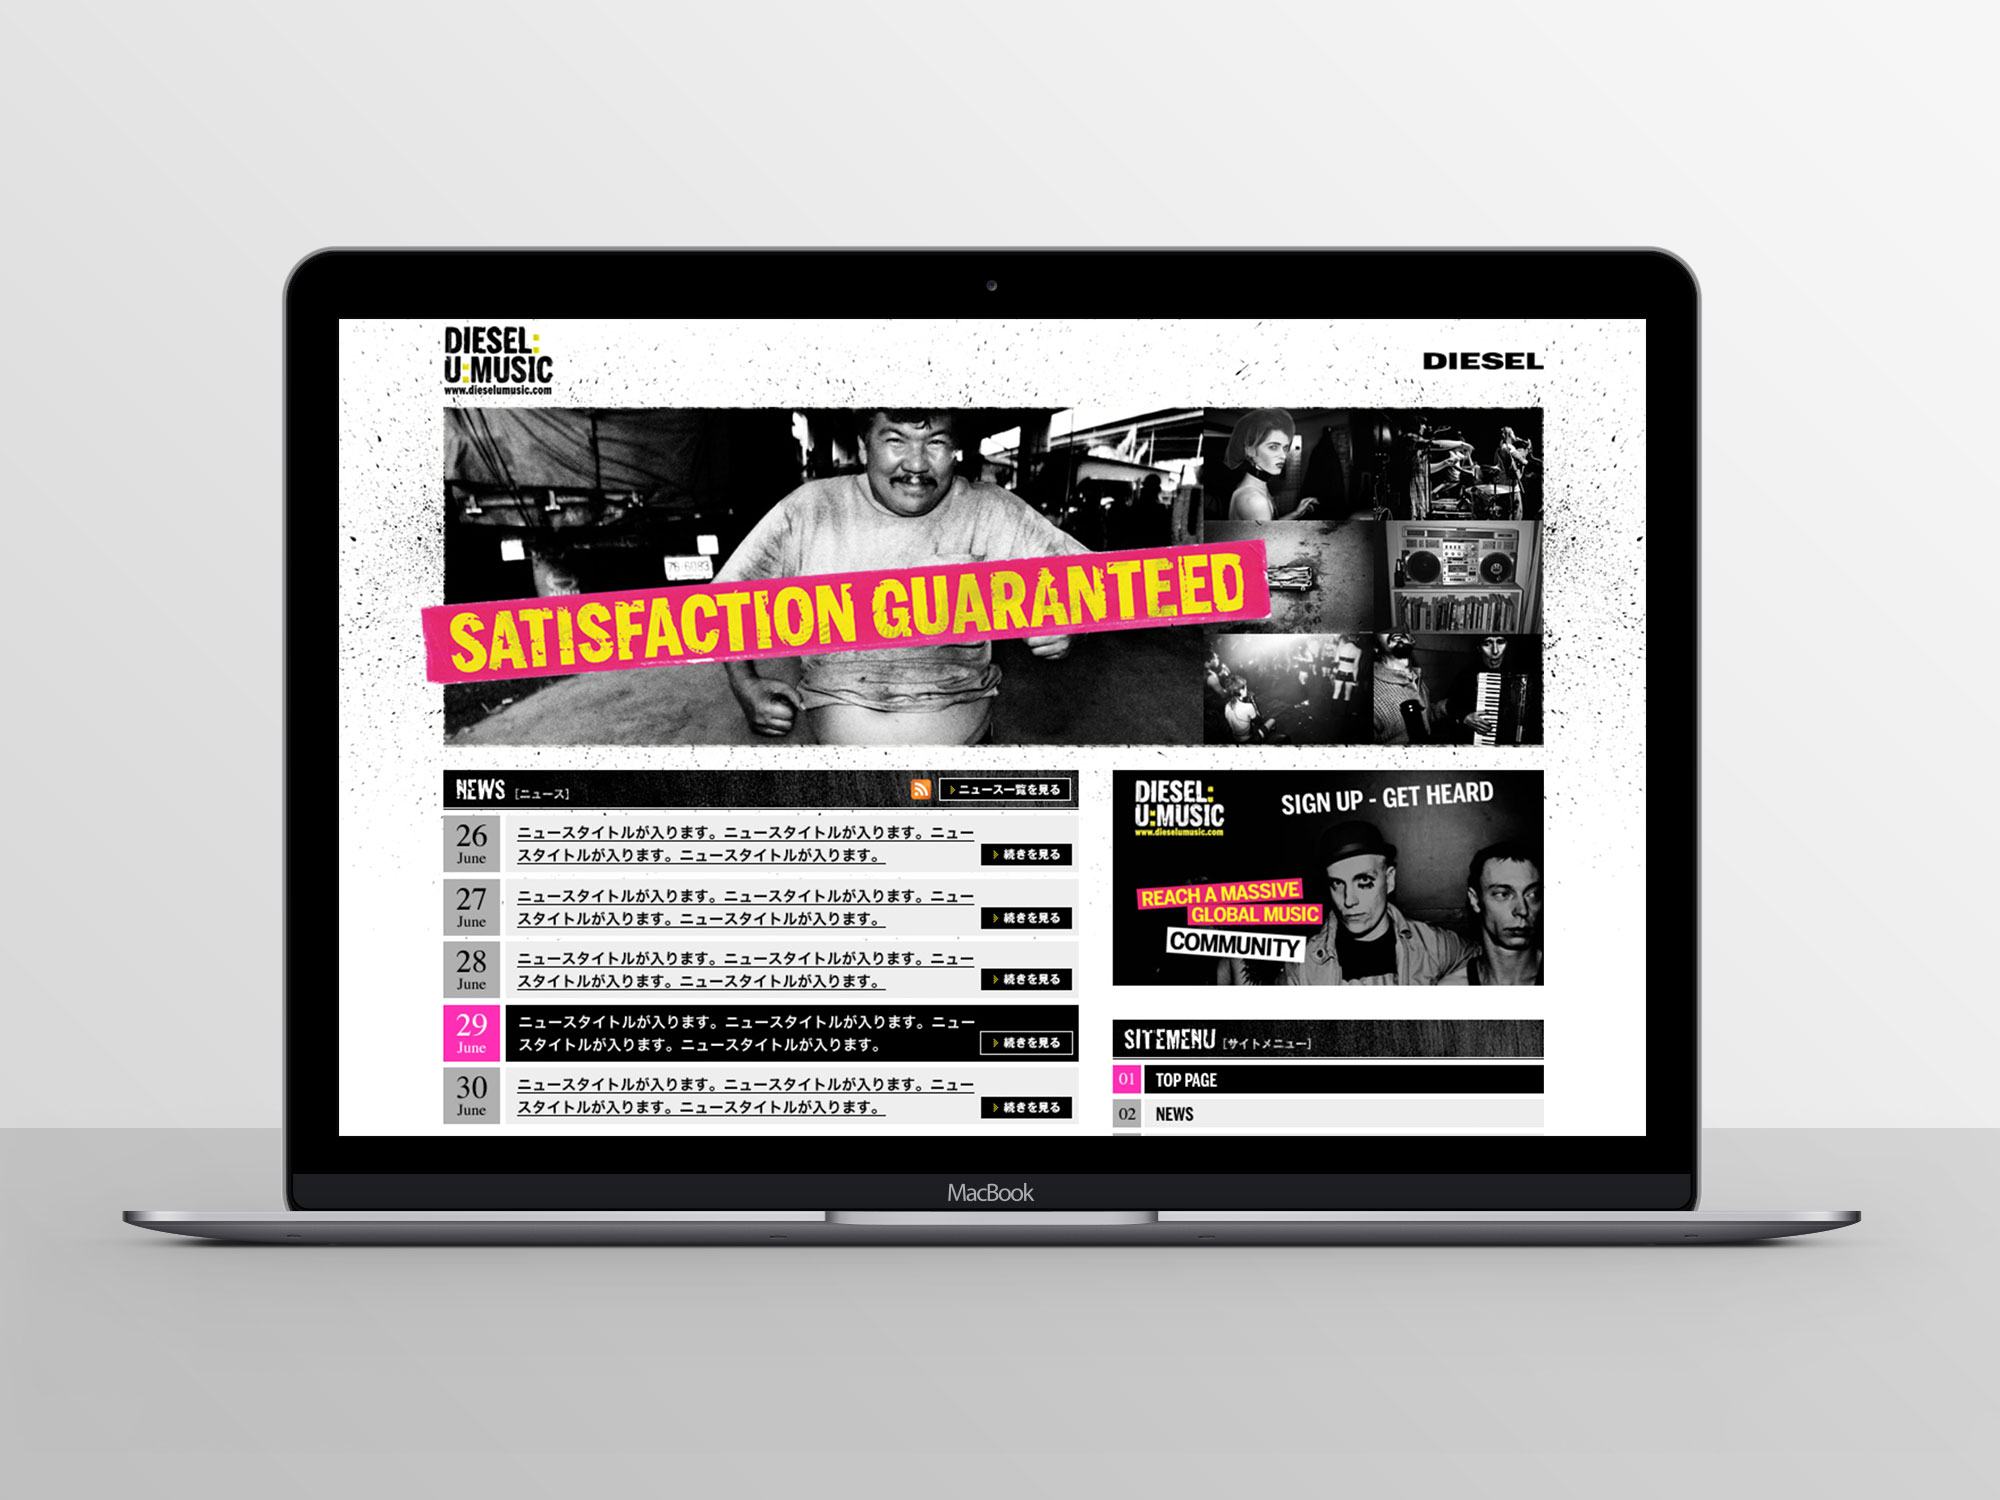 DIESEL U MUSIC Web SIte Design